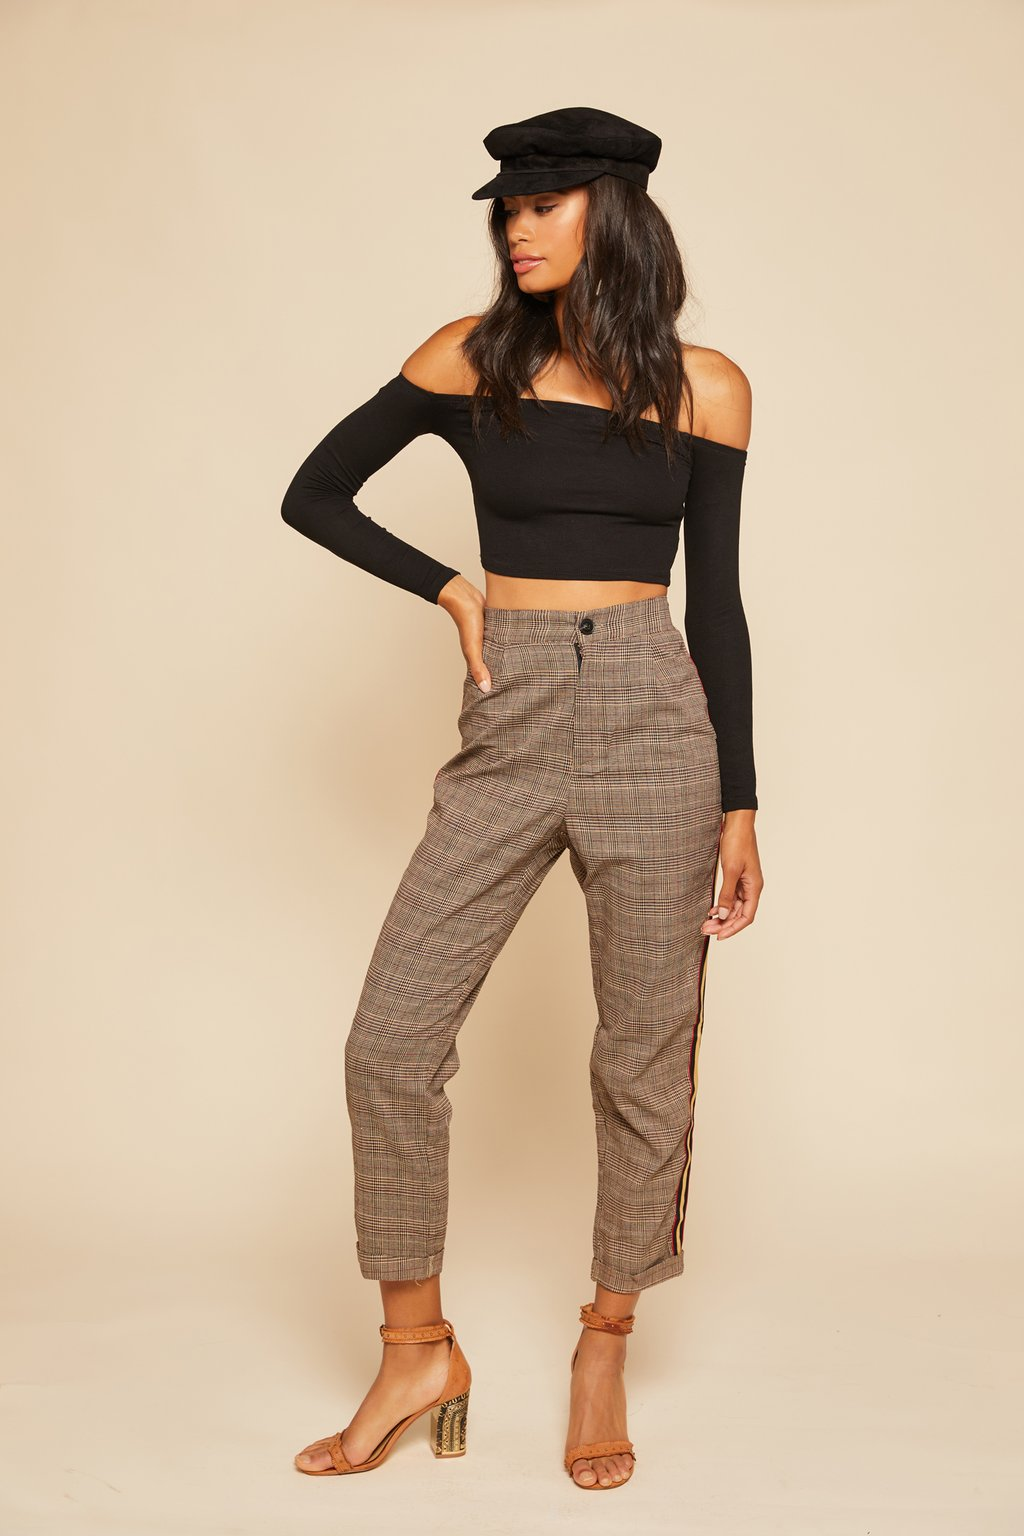 Step Up Plaid Pants - $78